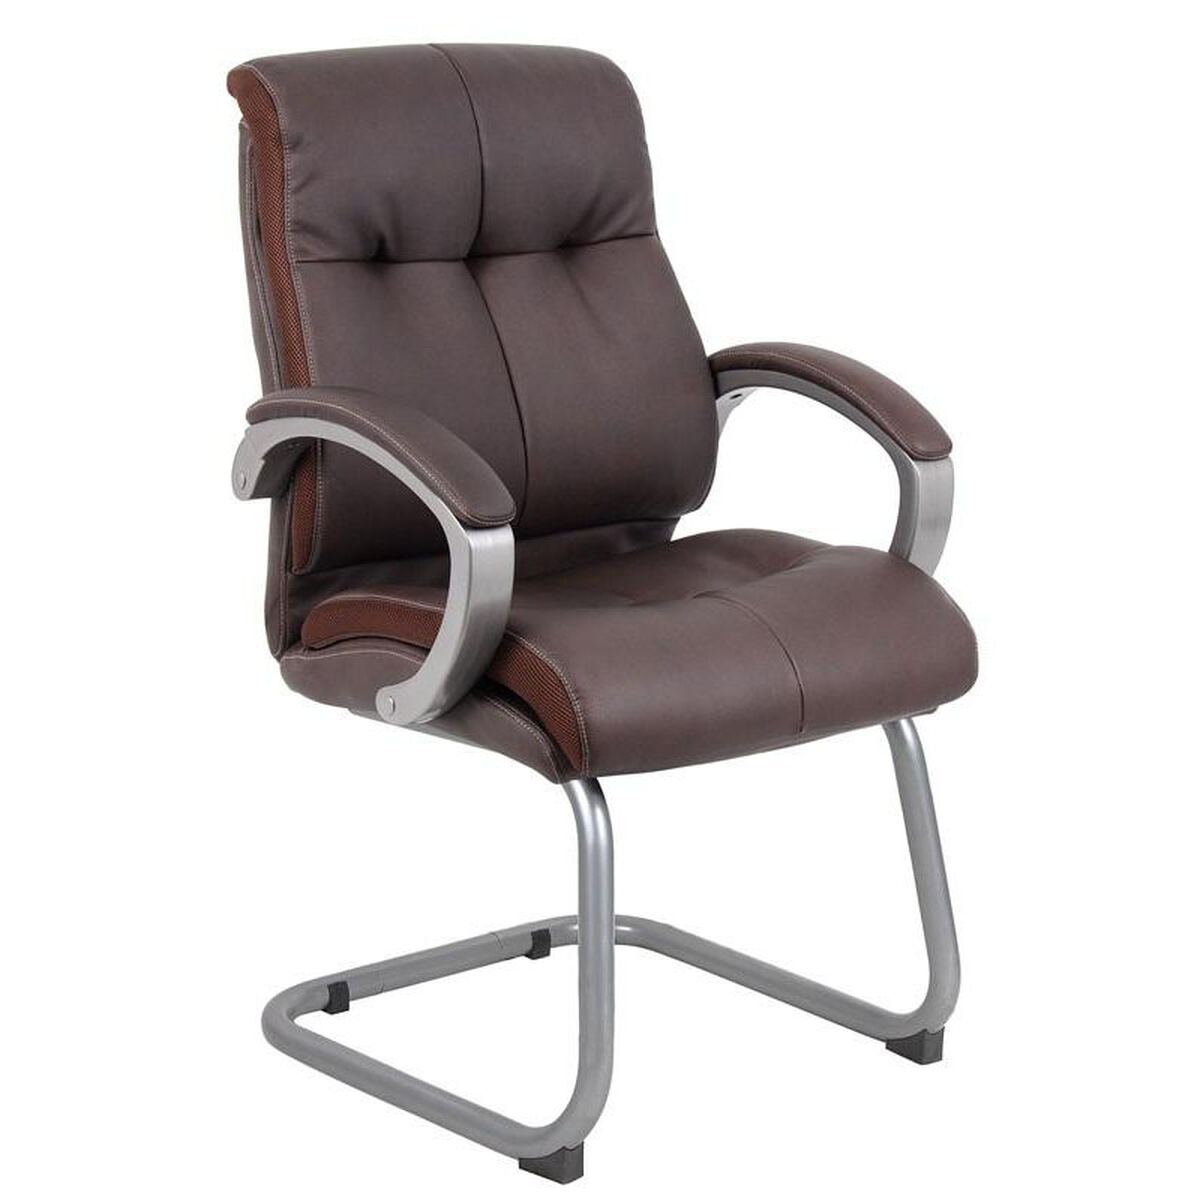 Our Double Plush Executive Guest Chair With Padded Arms Brown Is On Now